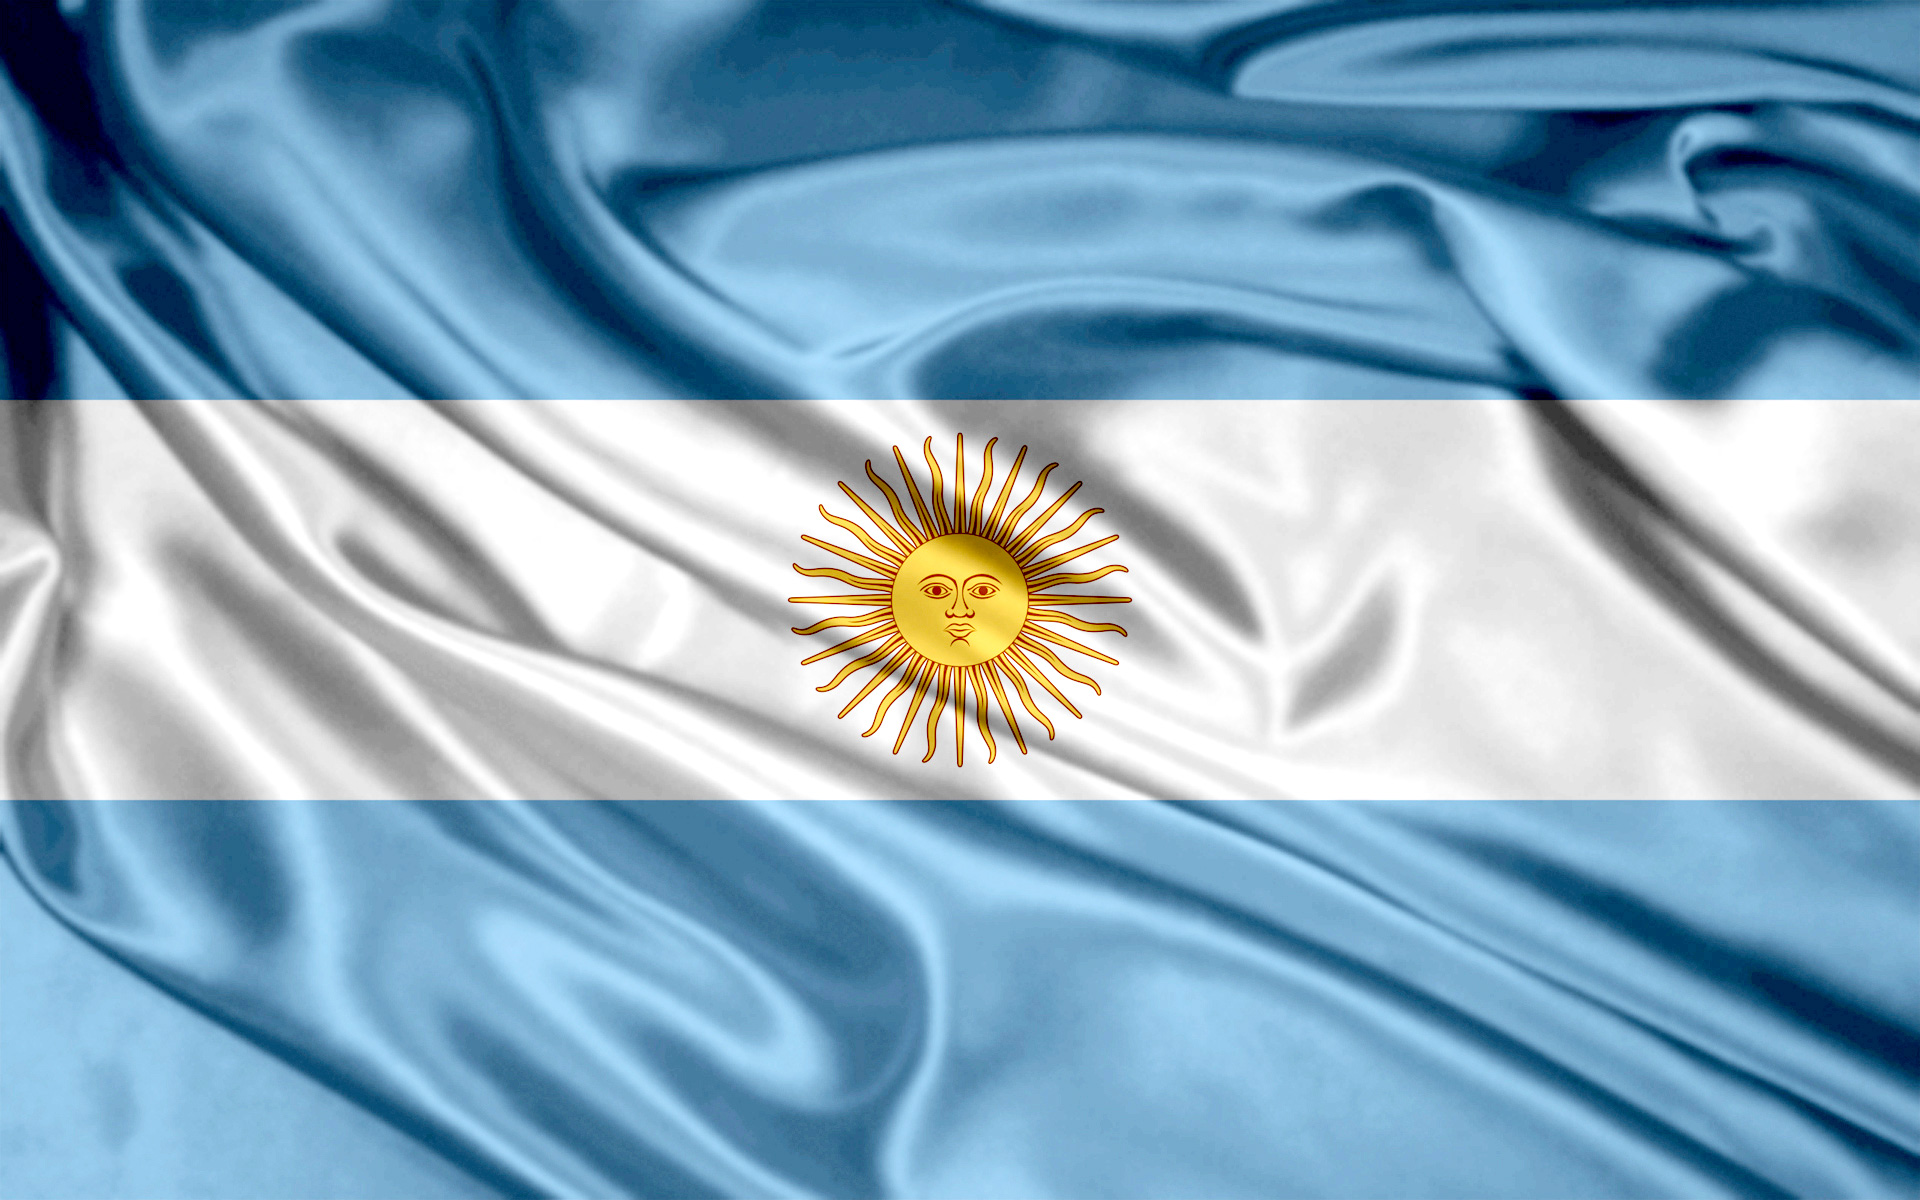 Argentina Silk Flag 359.56 Kb